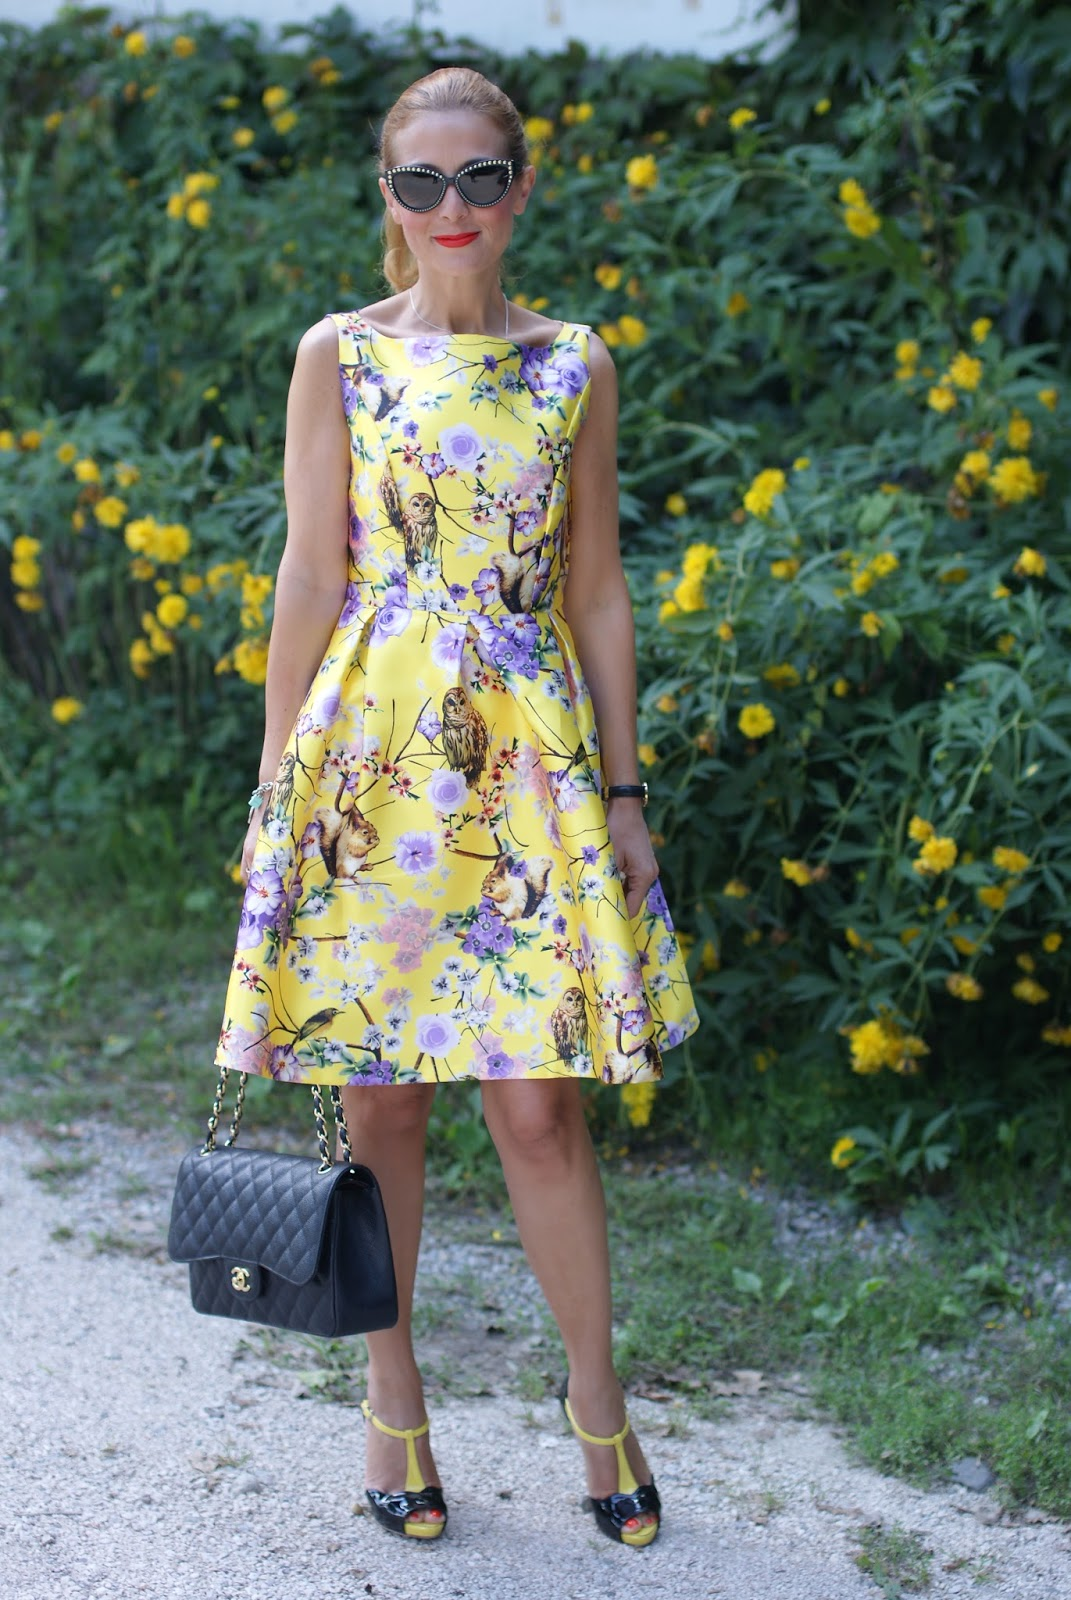 Zaful floral and owls yellow print dress with Chanel classic flap bag and fashionable ducks on Fashion and Cookies fashion blog